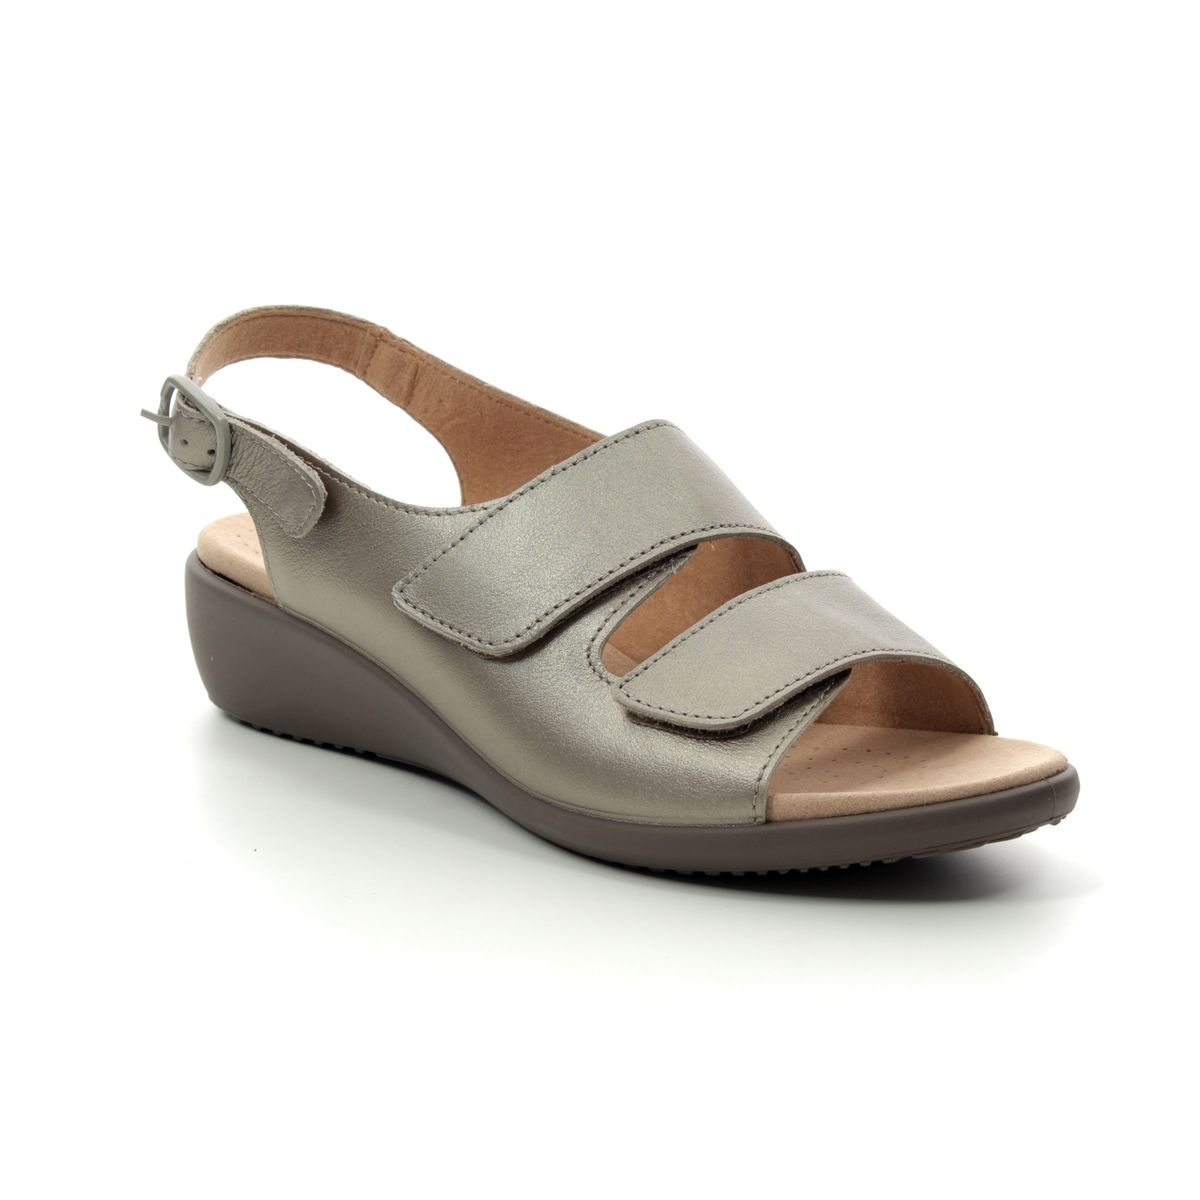 d3dc318c Hotter Sandals - Pewter - 9103/51 ELBA E FIT